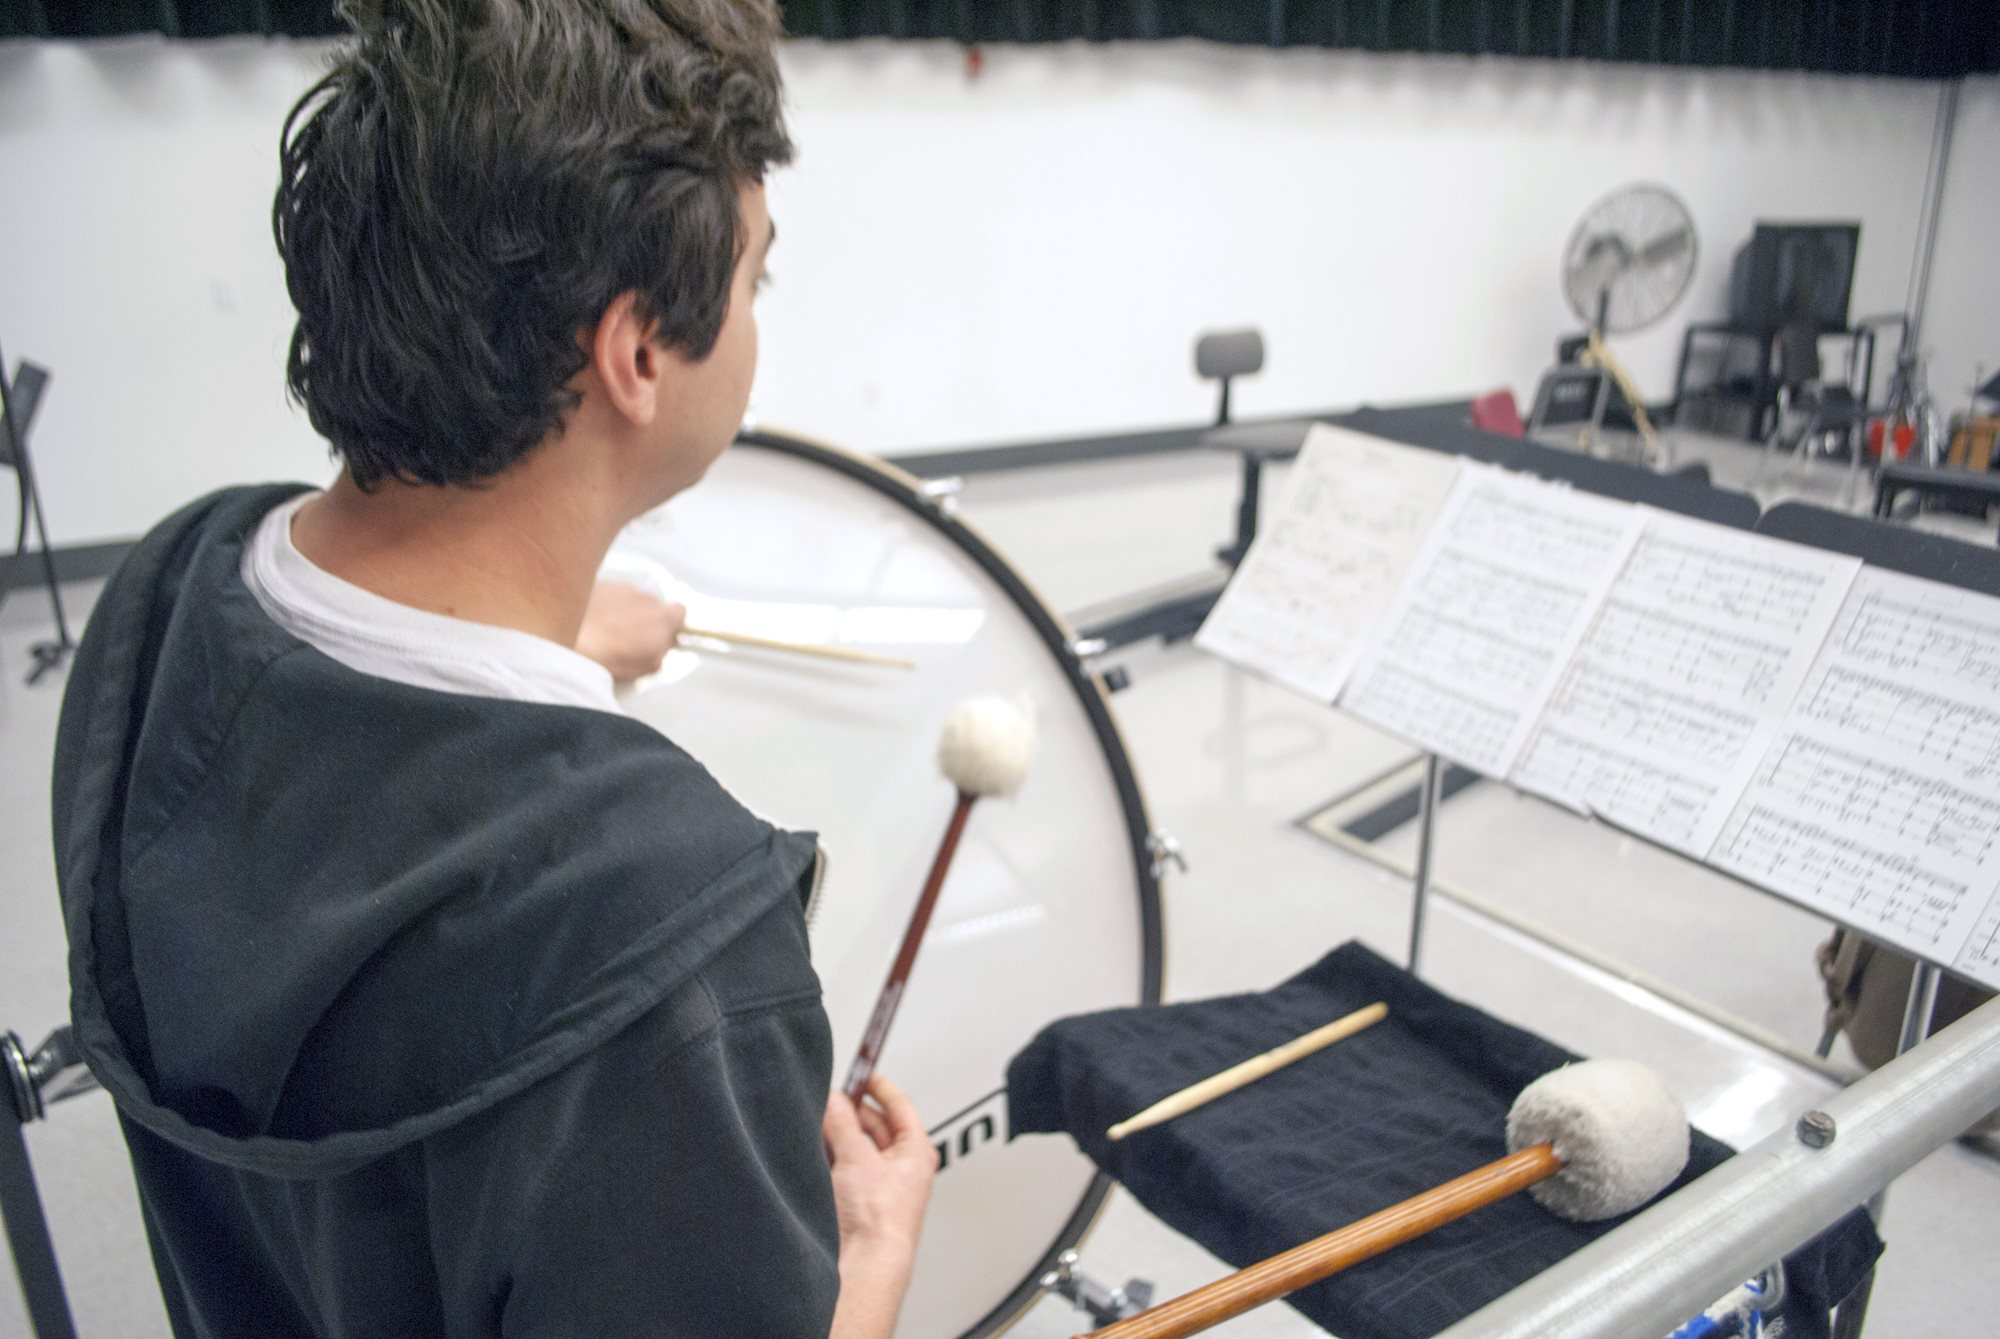 A student plays bass drum in front of several pages of sheet music.